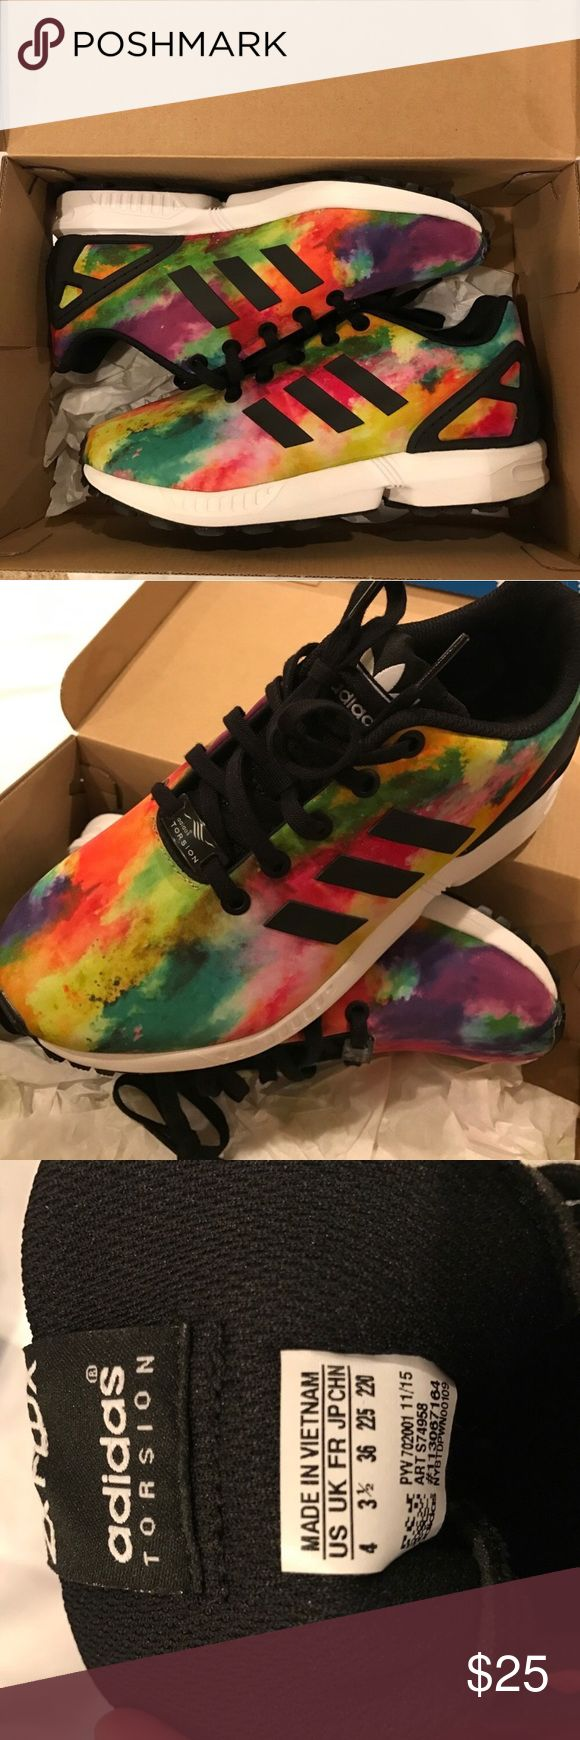 Adidas Flux Bough from another posher, PERFECT condition. Never been worn! I would LOVE to keep them but they are too small for me. Original box. Kids size 4/Women's 6 Adidas Shoes Sneakers